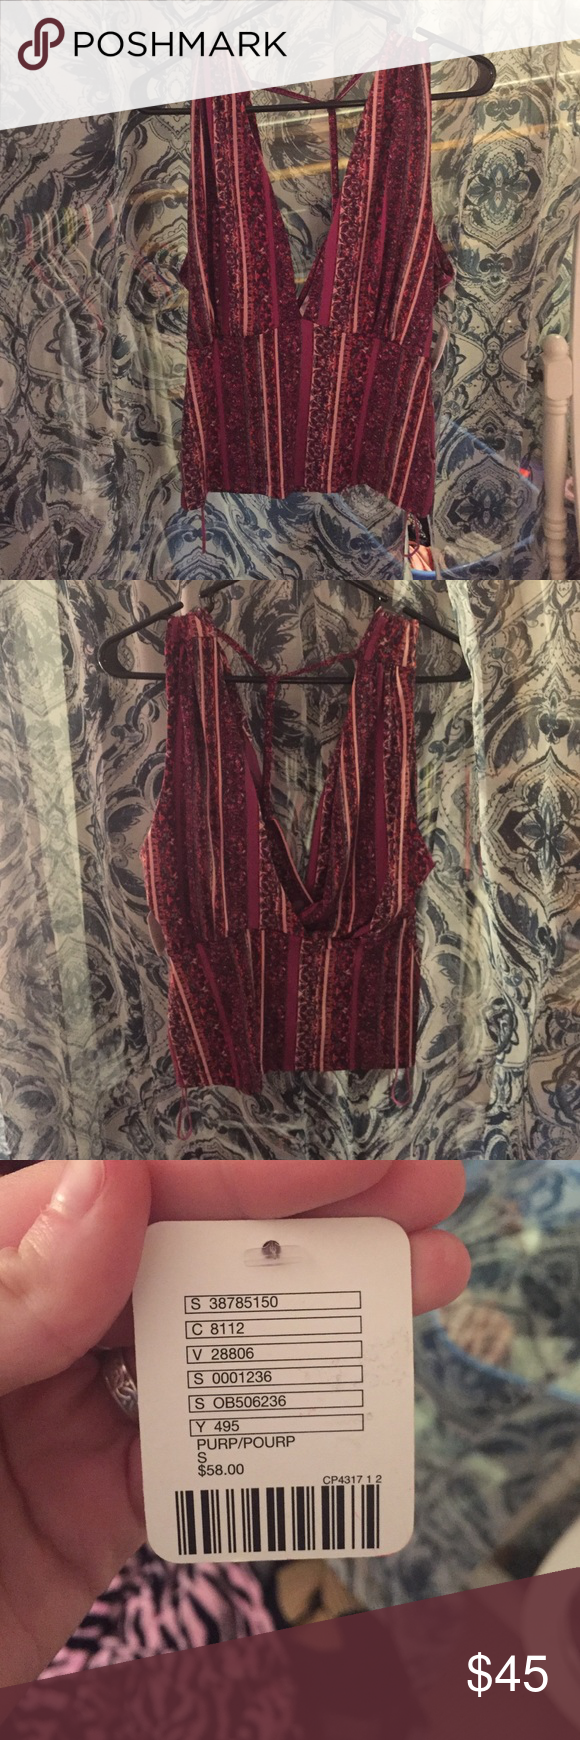 Shirt Brand new from free people got it for $58 size small Free People Tops Tank Tops